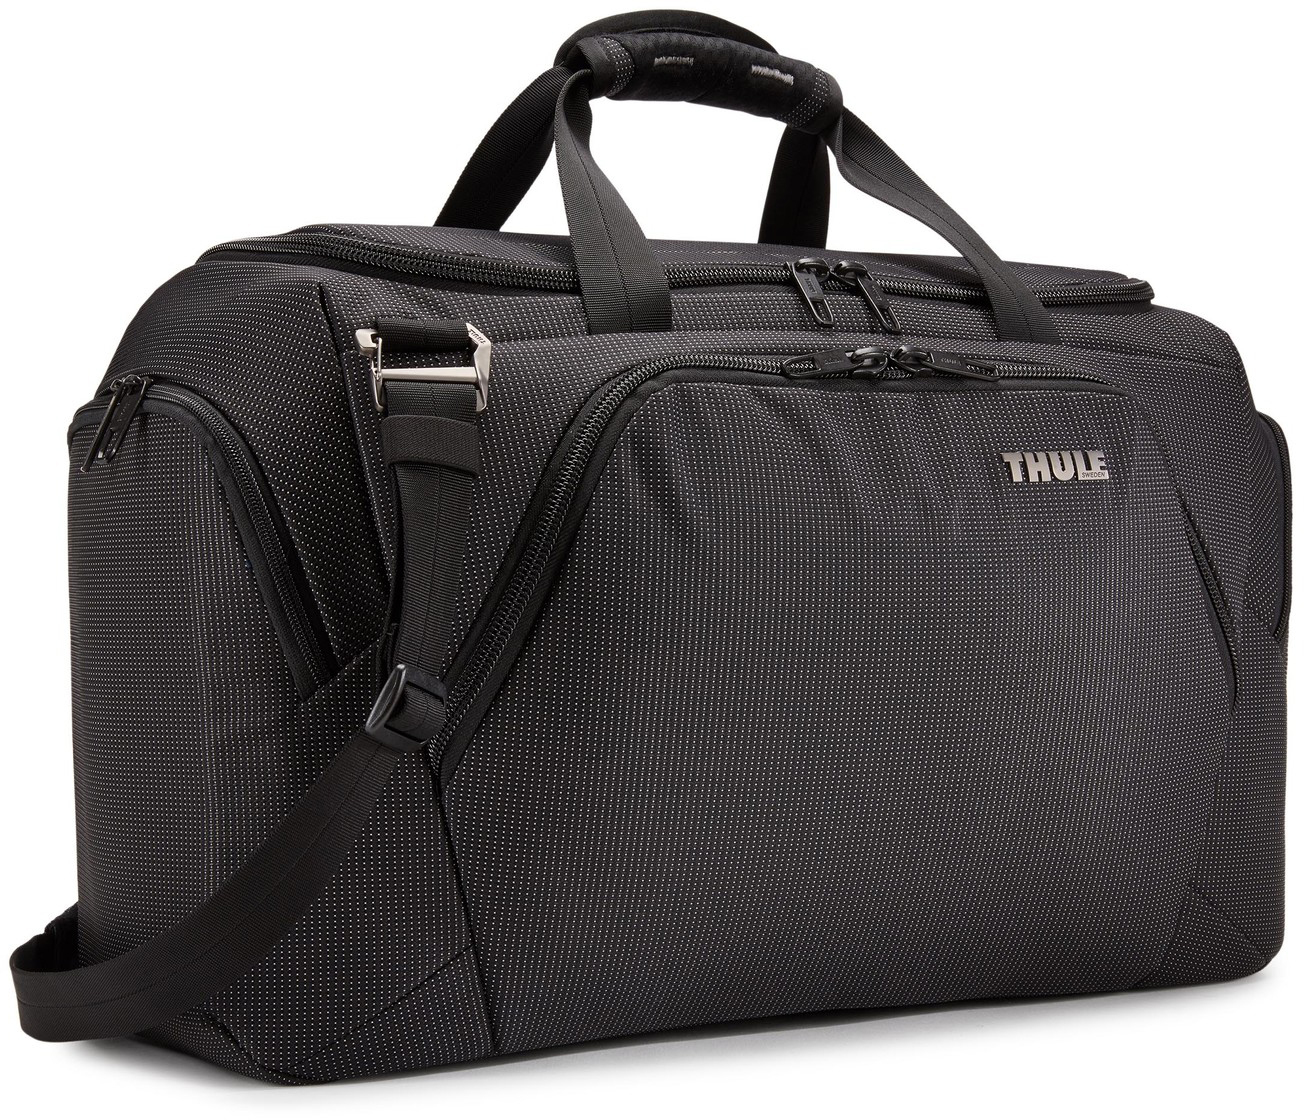 Thule Crossover Сумка cabin size Thule Crossover 2 Duffel 44L 684617_sized_1800x1200_rev_1.jpg